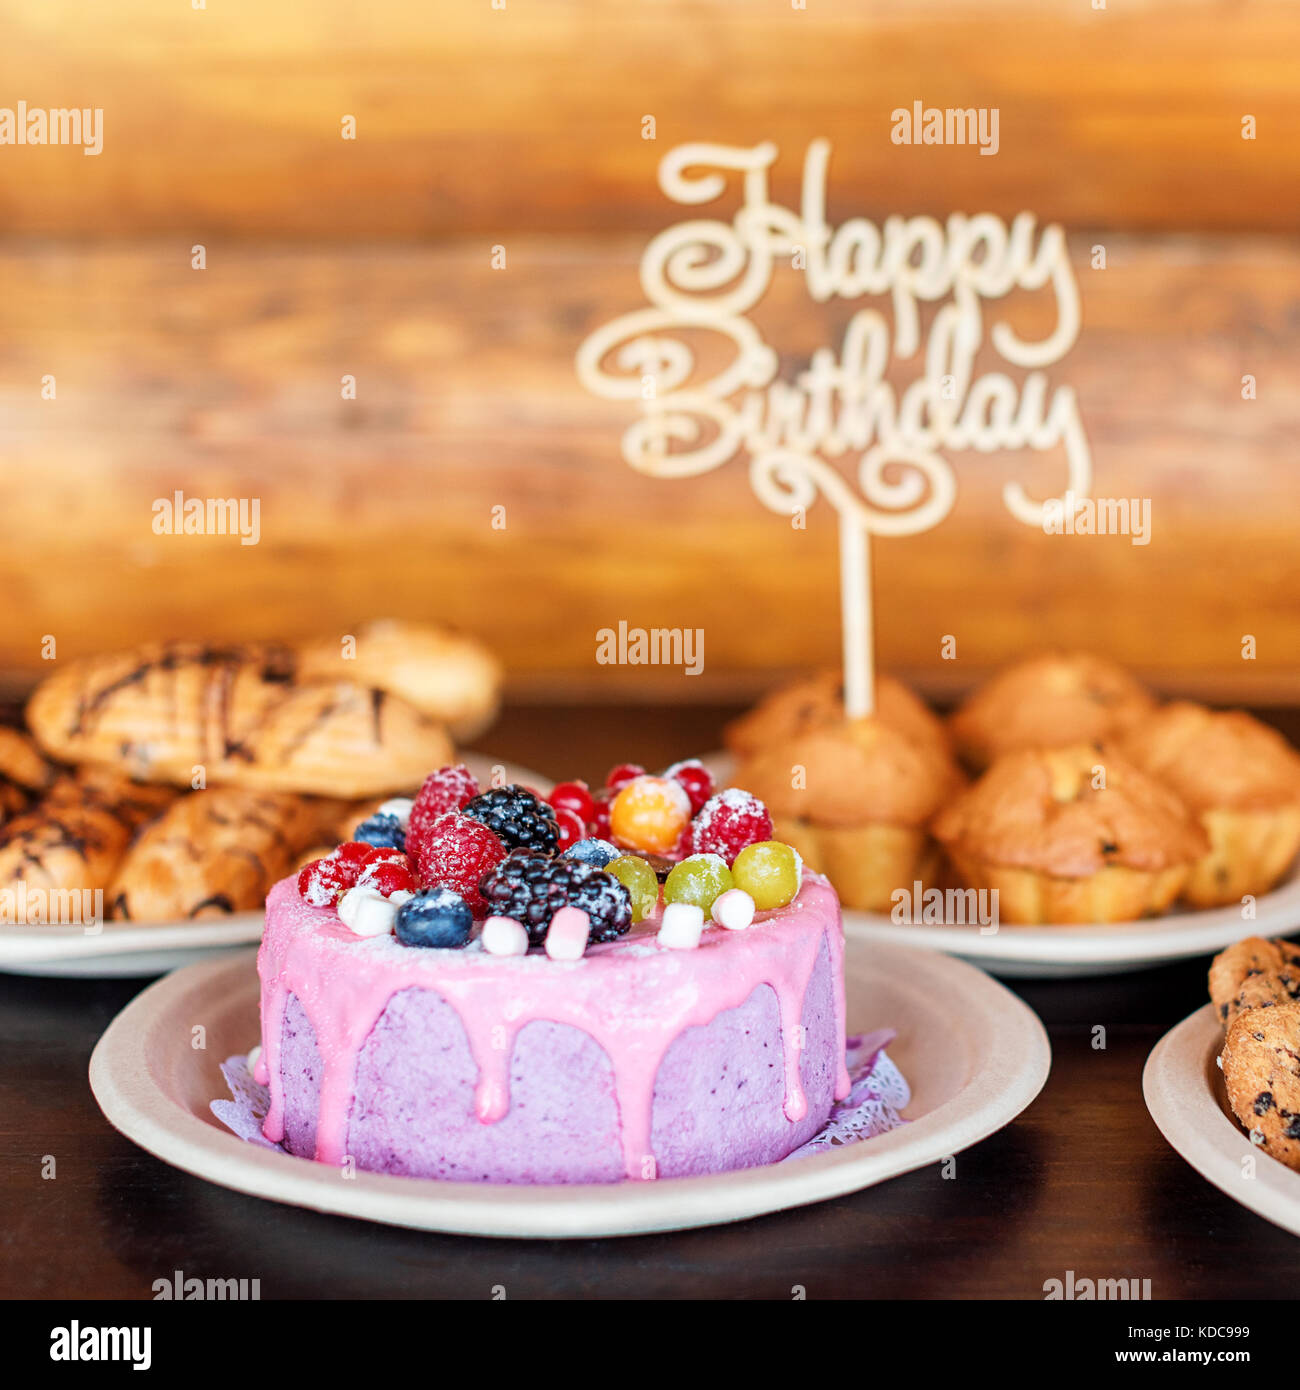 Birthday cake and muffins with wooden greeting sign on rustic background. Wooden sing with letters Happy Birthday - Stock Image